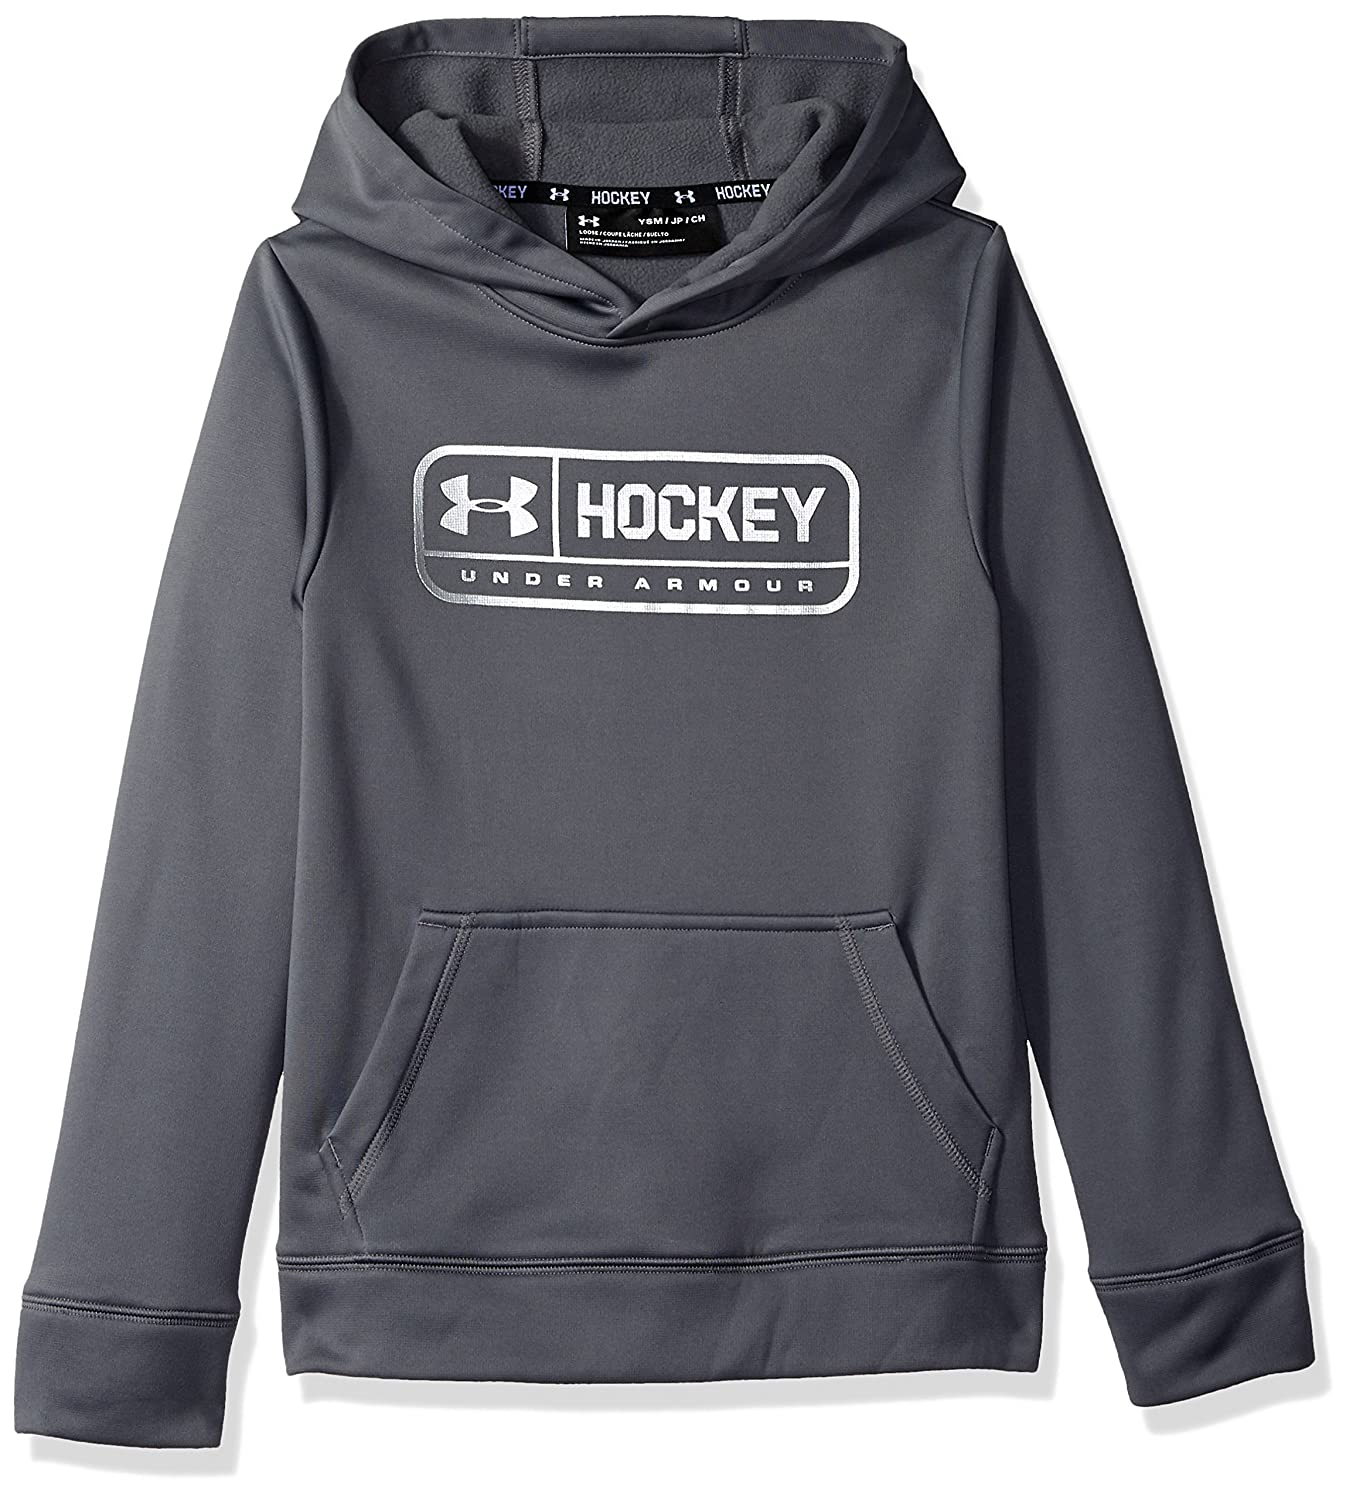 Under Armour Boys Hockey Hoodie